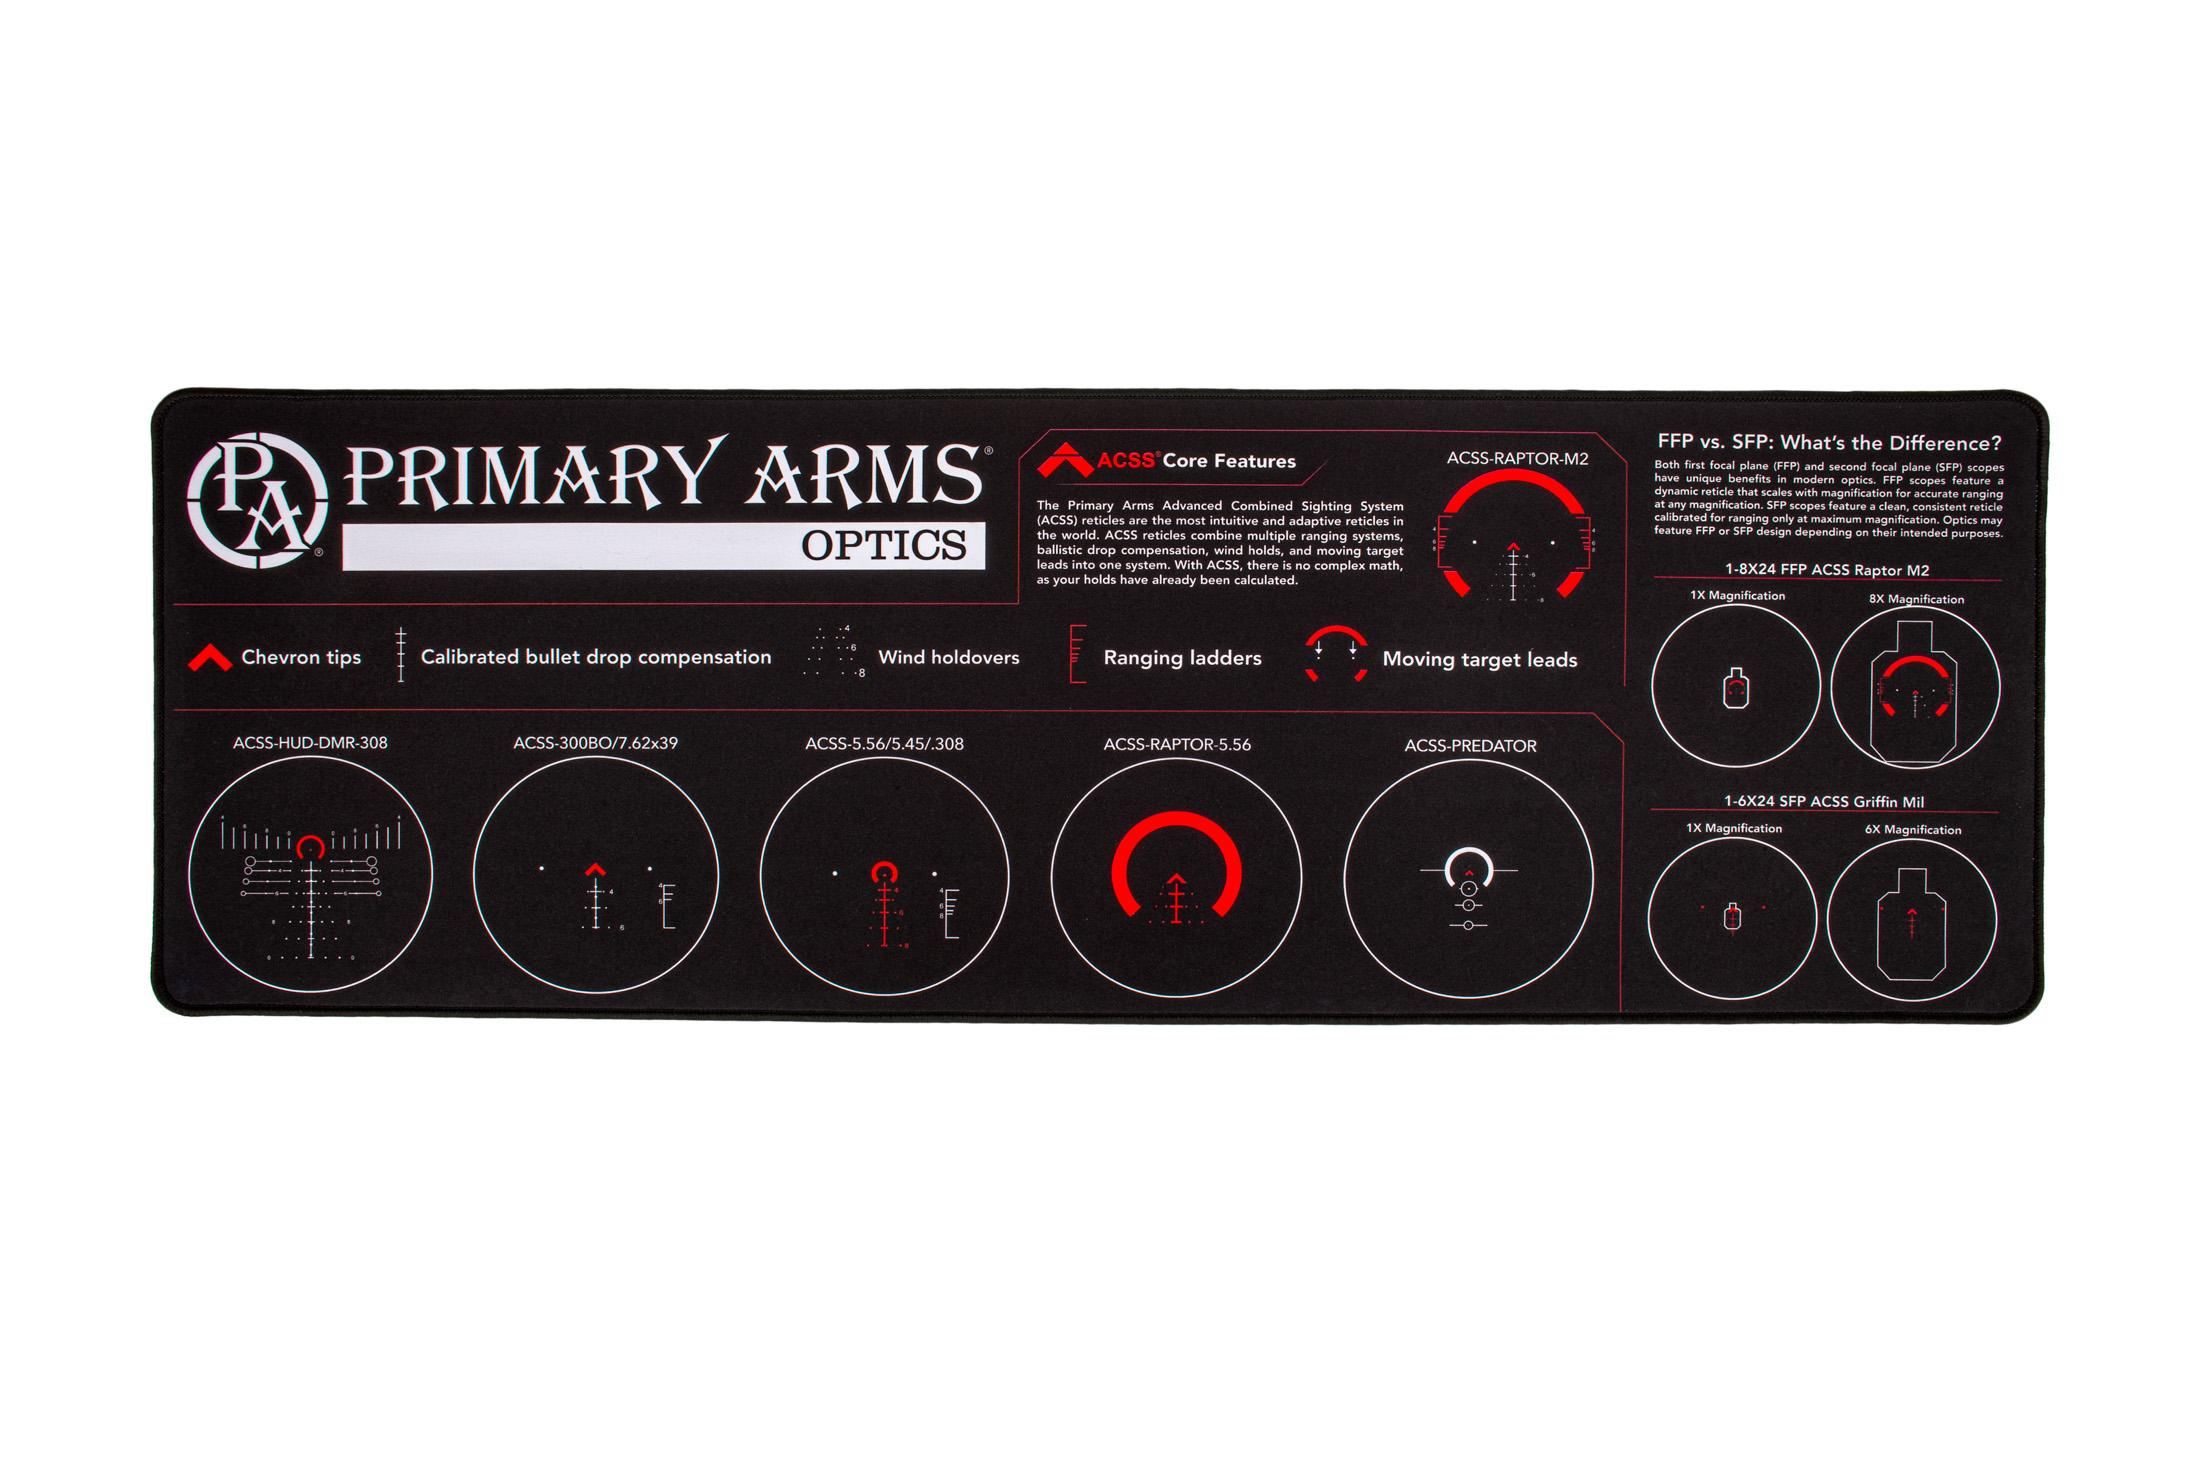 The Primary Arms Gun Cleaning Mat with ACSS Reticle graphics features durable water resistant Neoprene material and braided edges